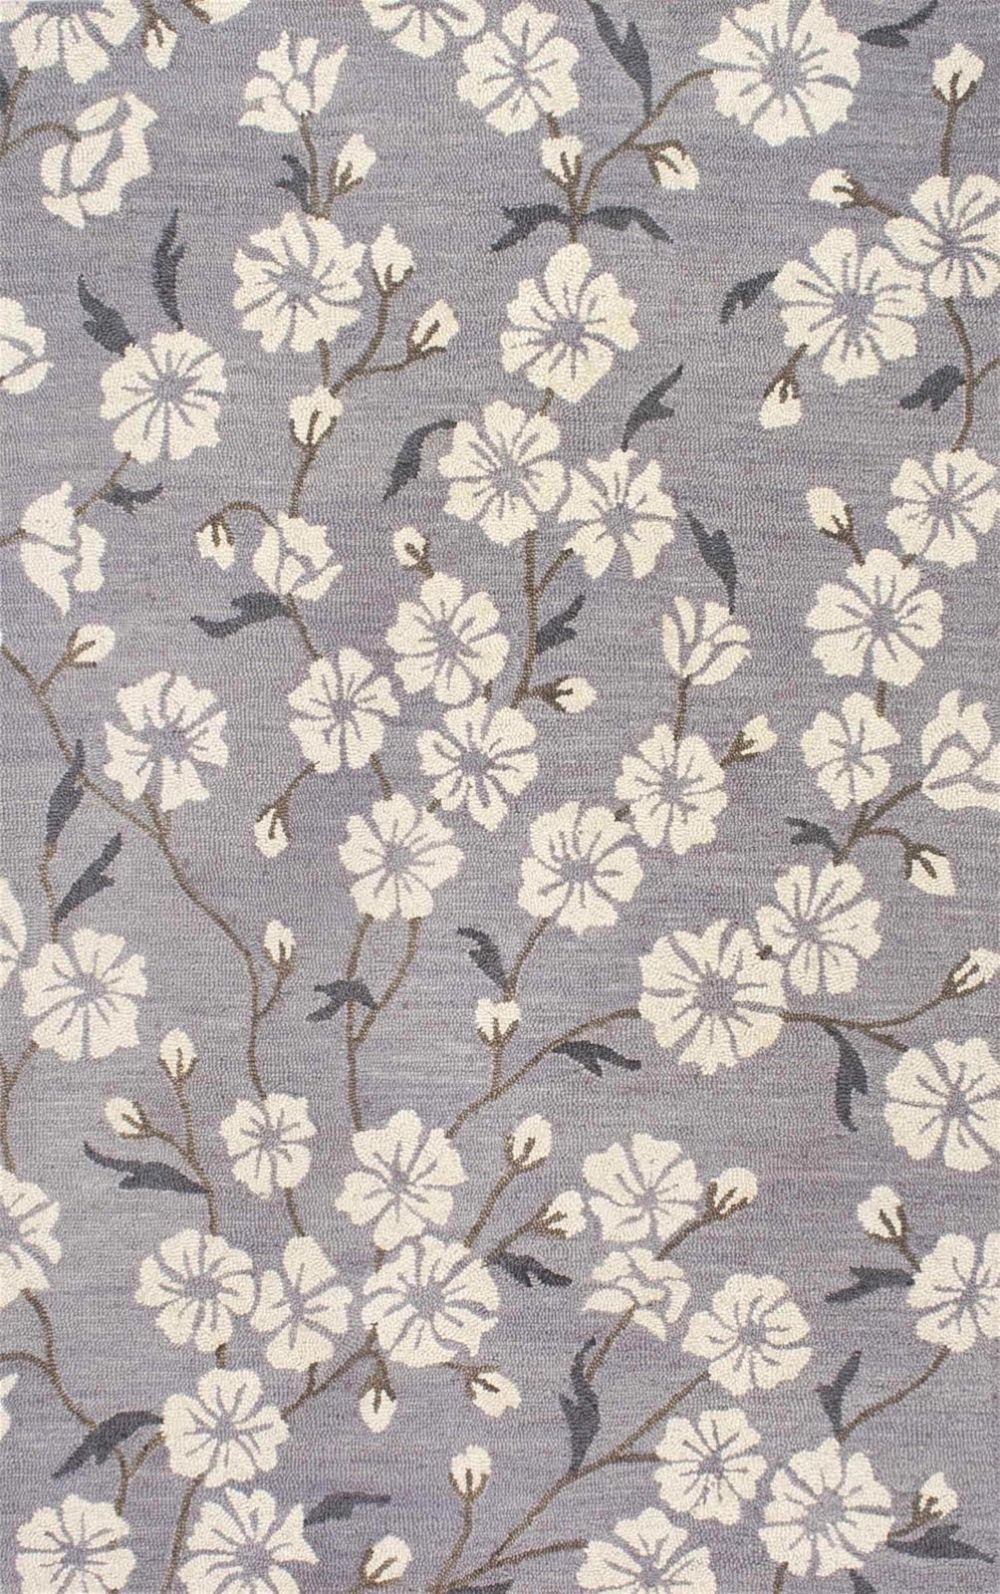 nuloom maupin country & floral area rug collection